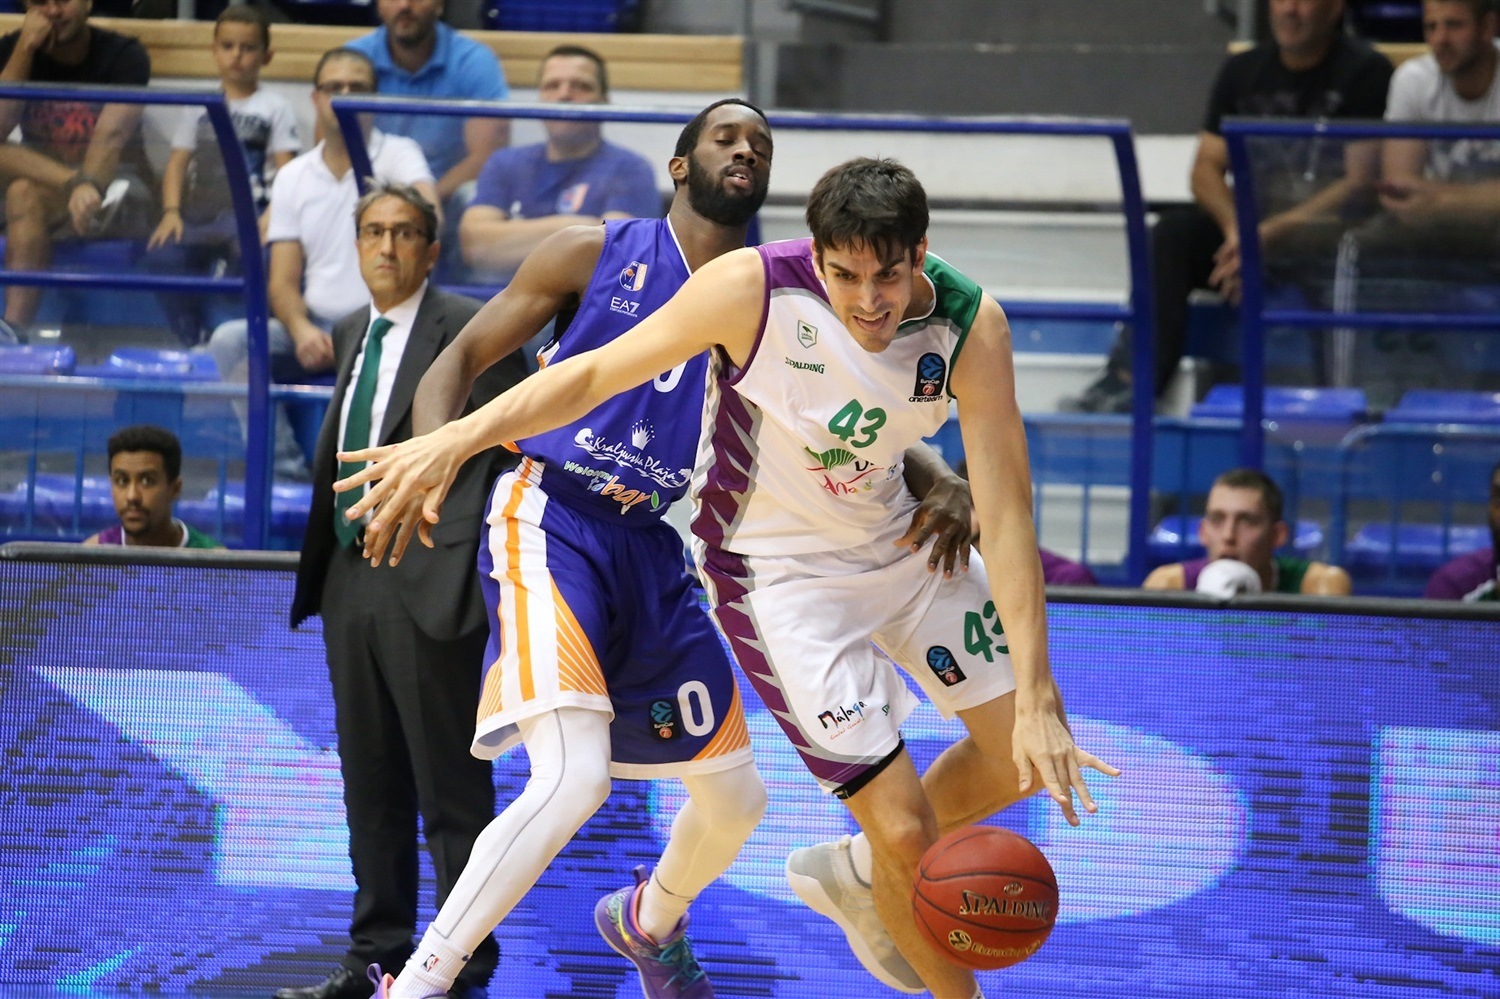 Carlos Suarez - Unicaja Malaga (photo Mornar) - EC18